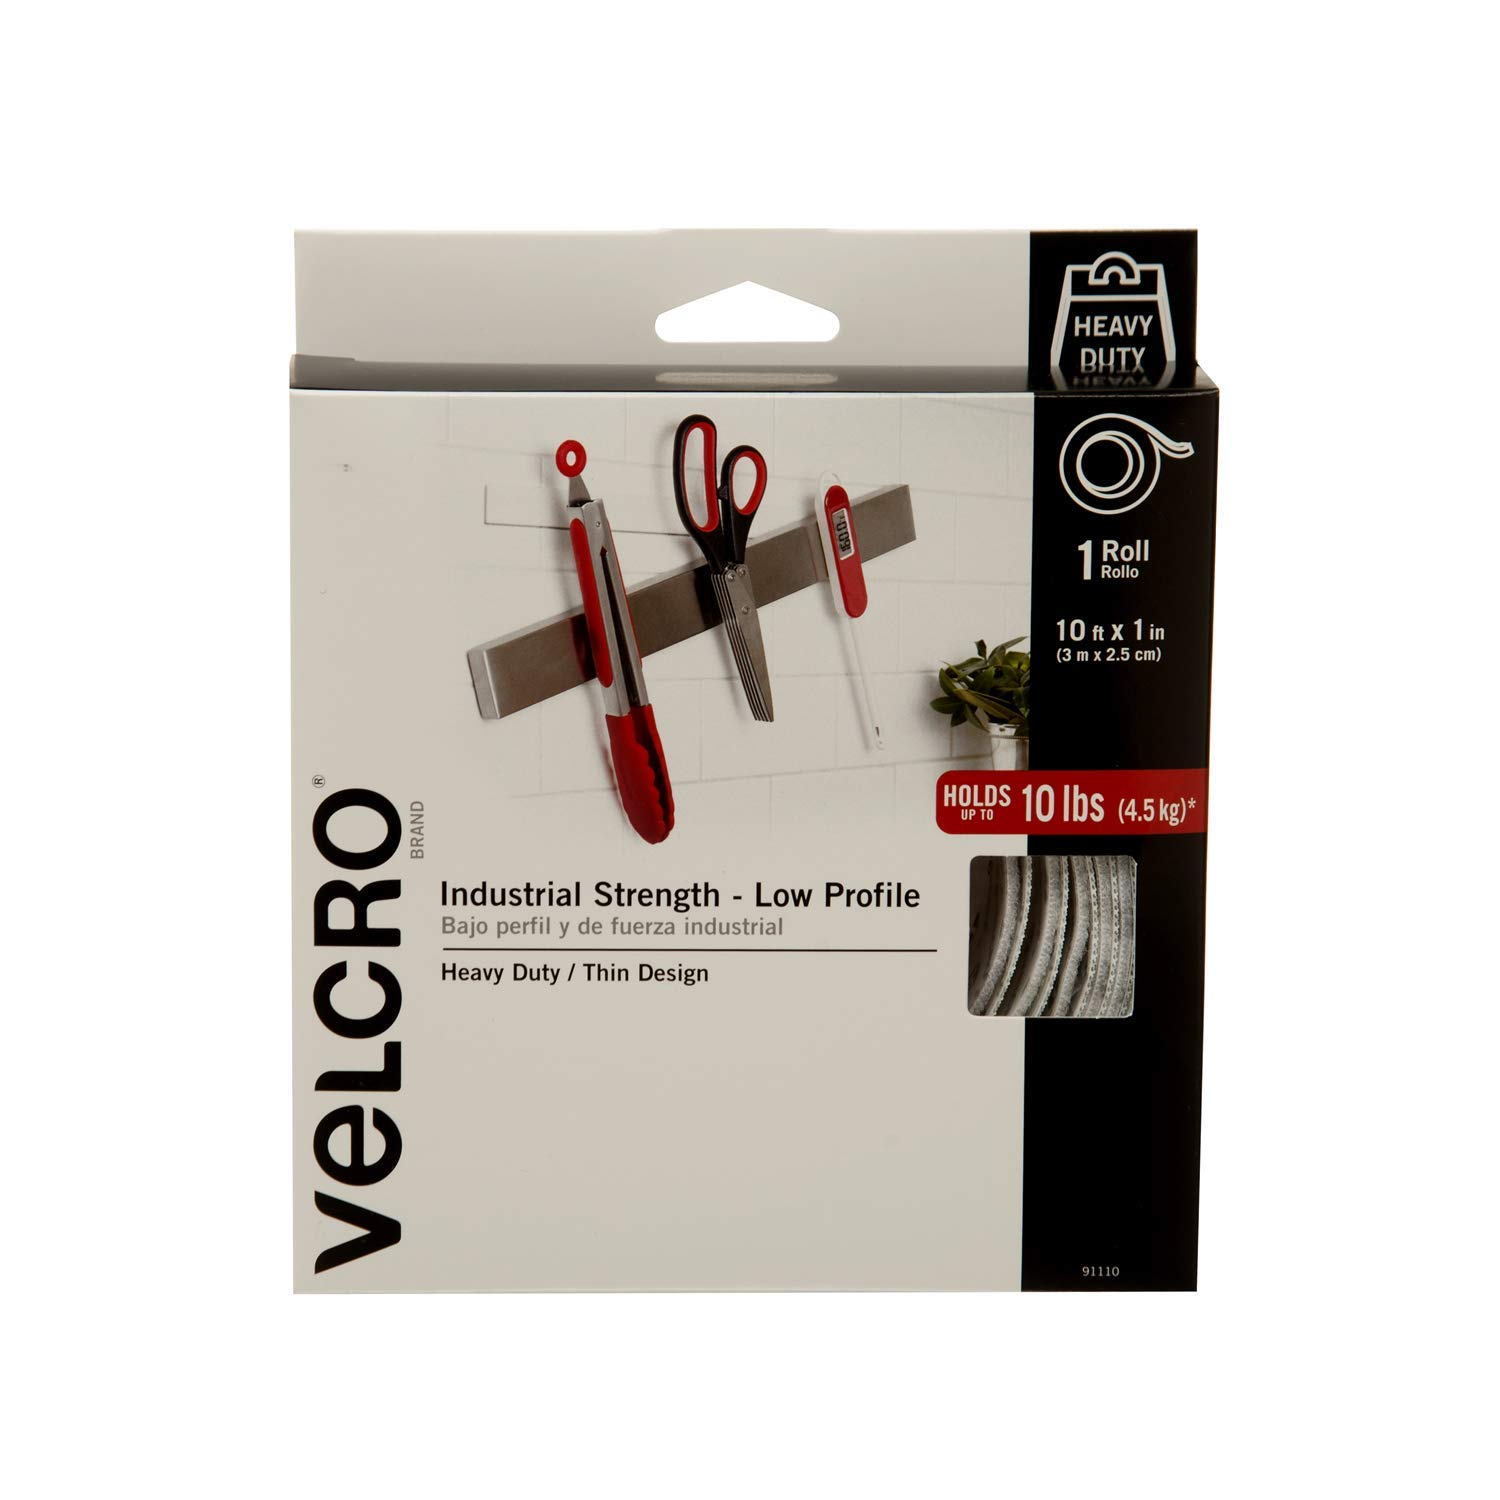 VELCRO Brand Industrial Superior Strength Thickness Size 10ft x 1in Tape Black